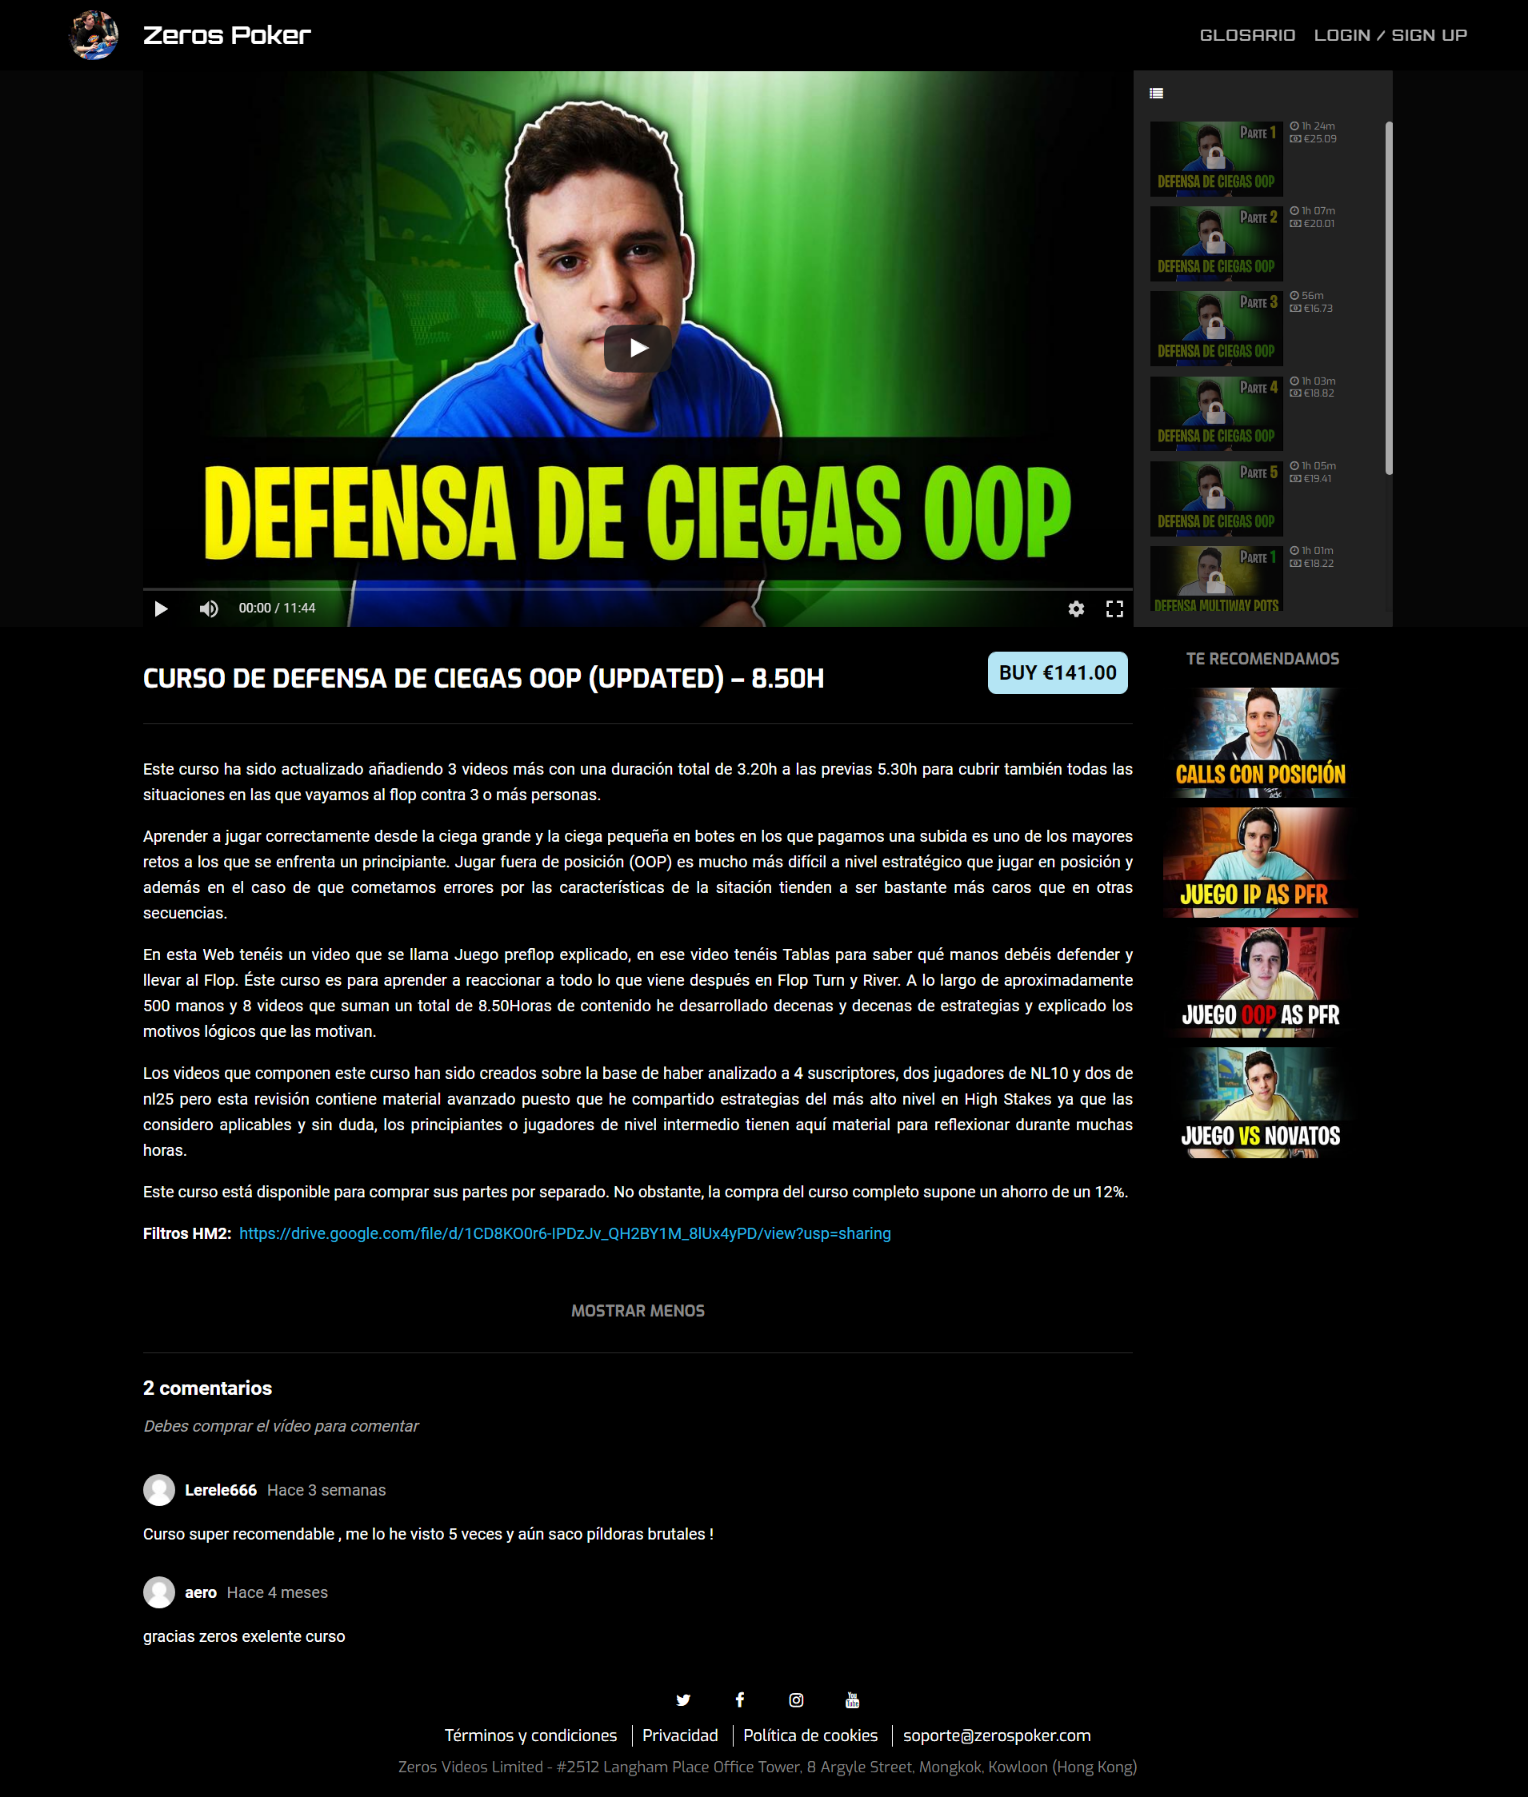 CURSO DE DEFENSA DE CIEGAS OOP (UPDATED)